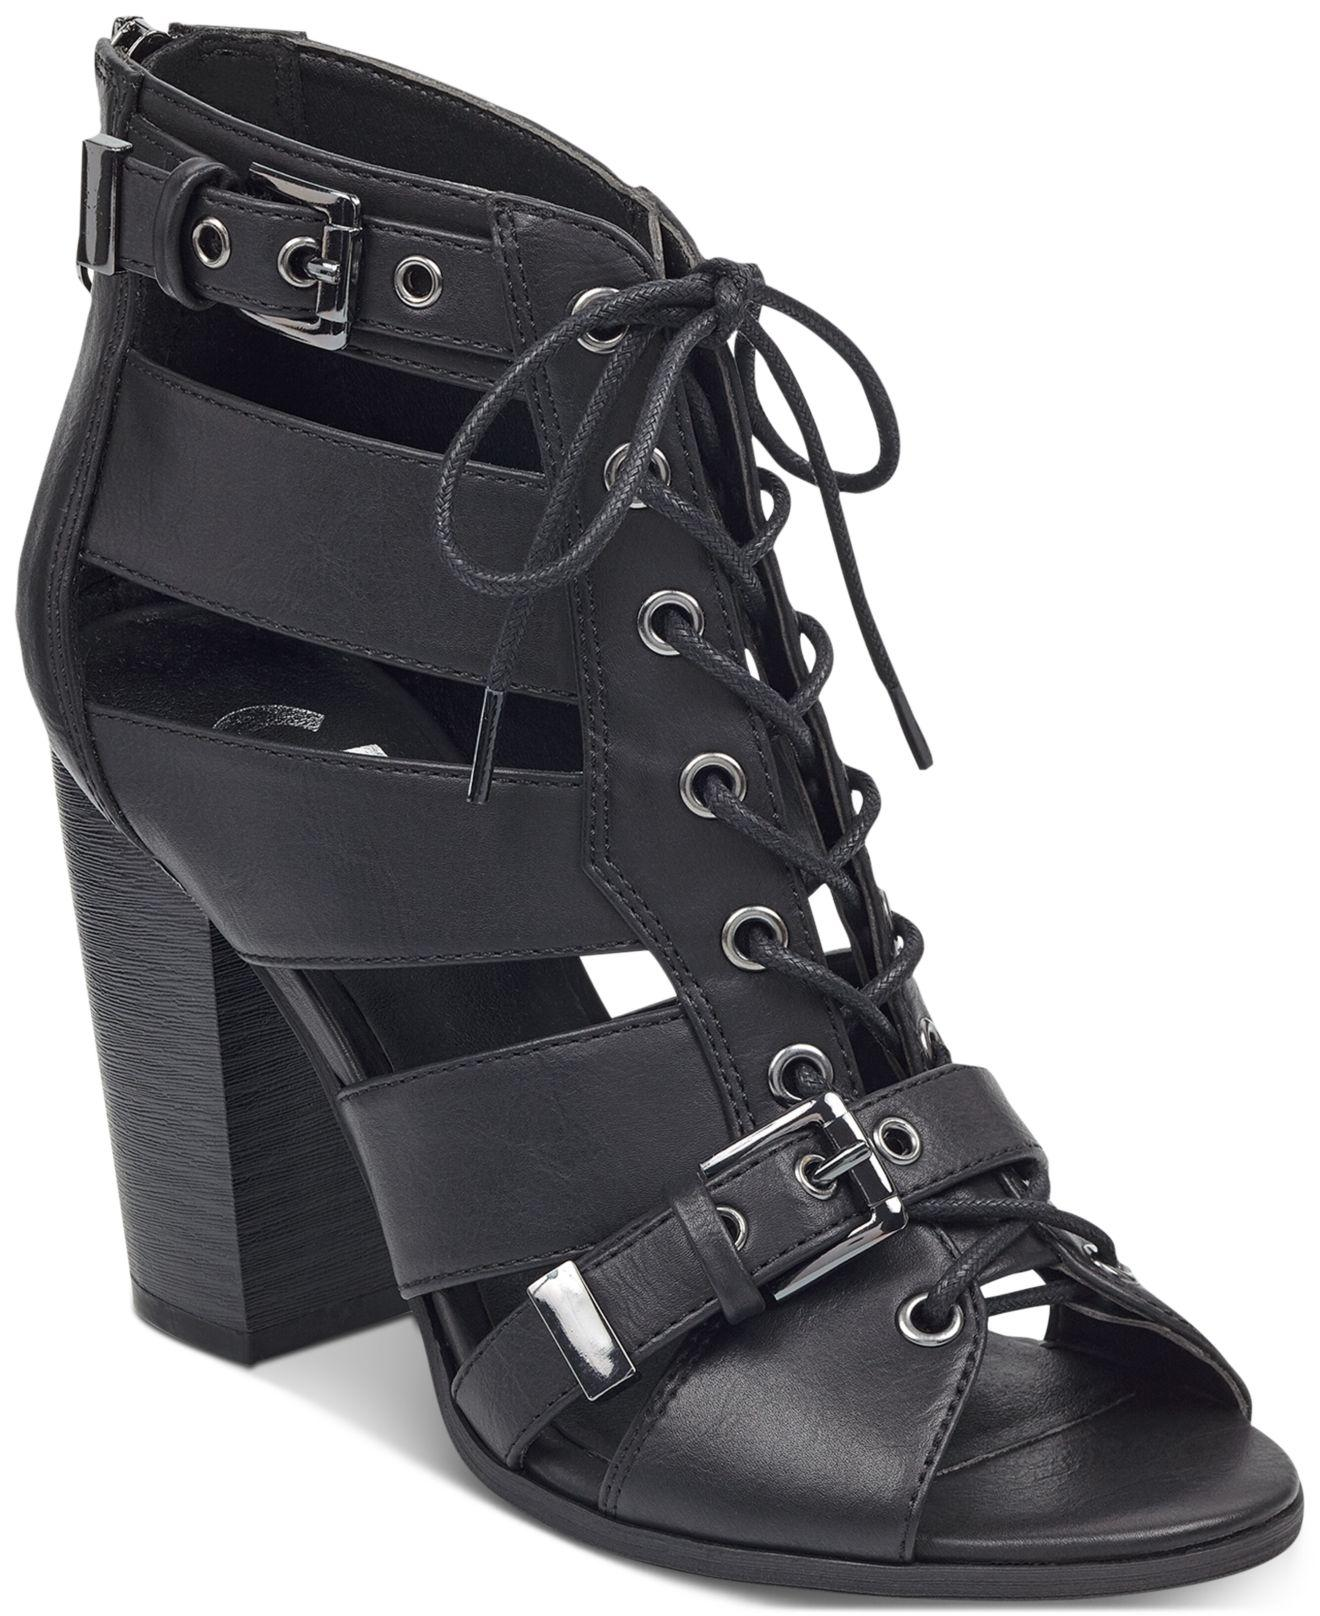 G by Guess Portlyn Dress Sandals in Black - Lyst